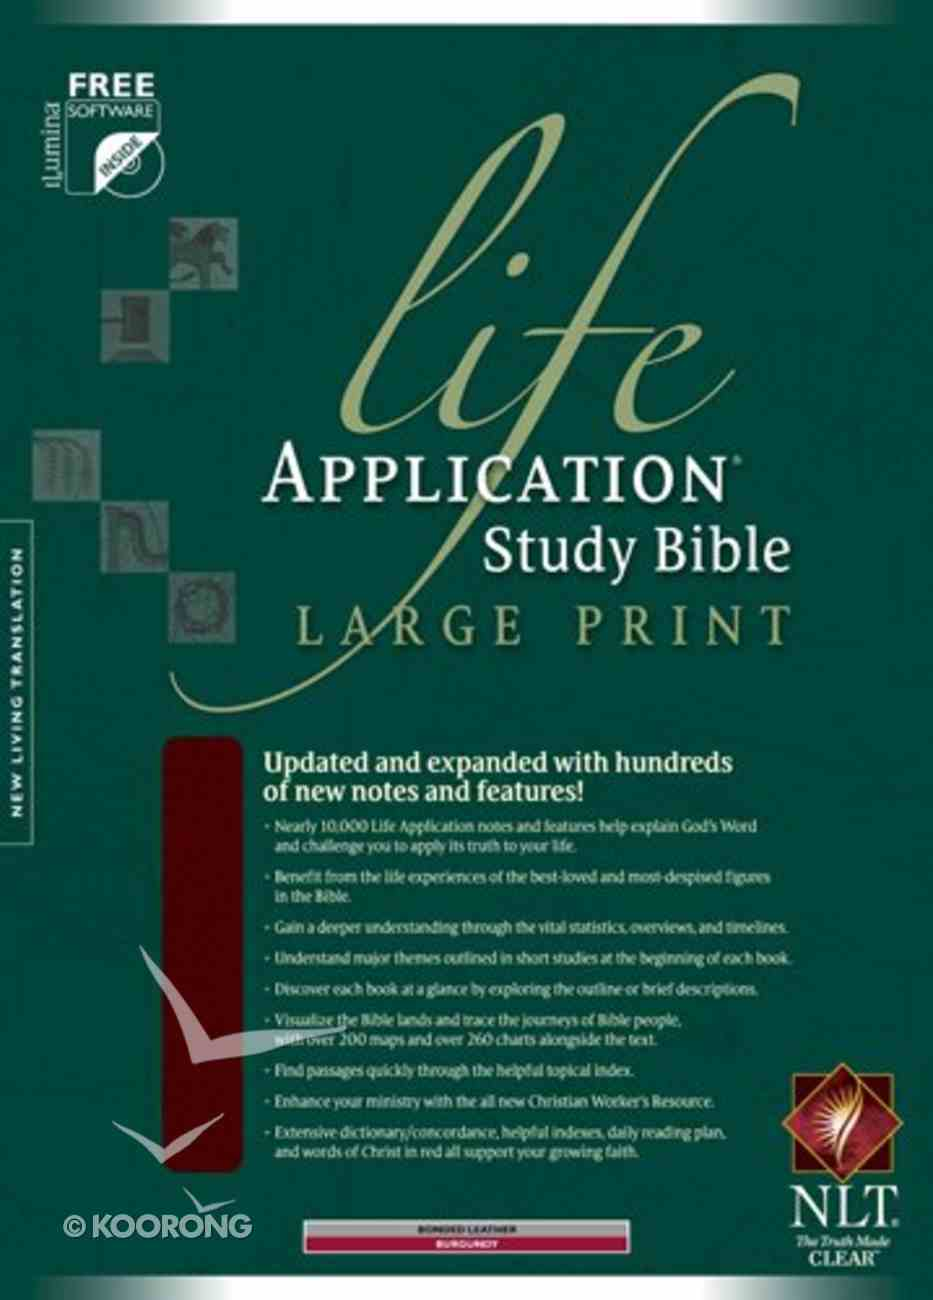 NLT Life Application Study Indexed Bible Burgundy Large Print (Red Letter Edition) Bonded Leather